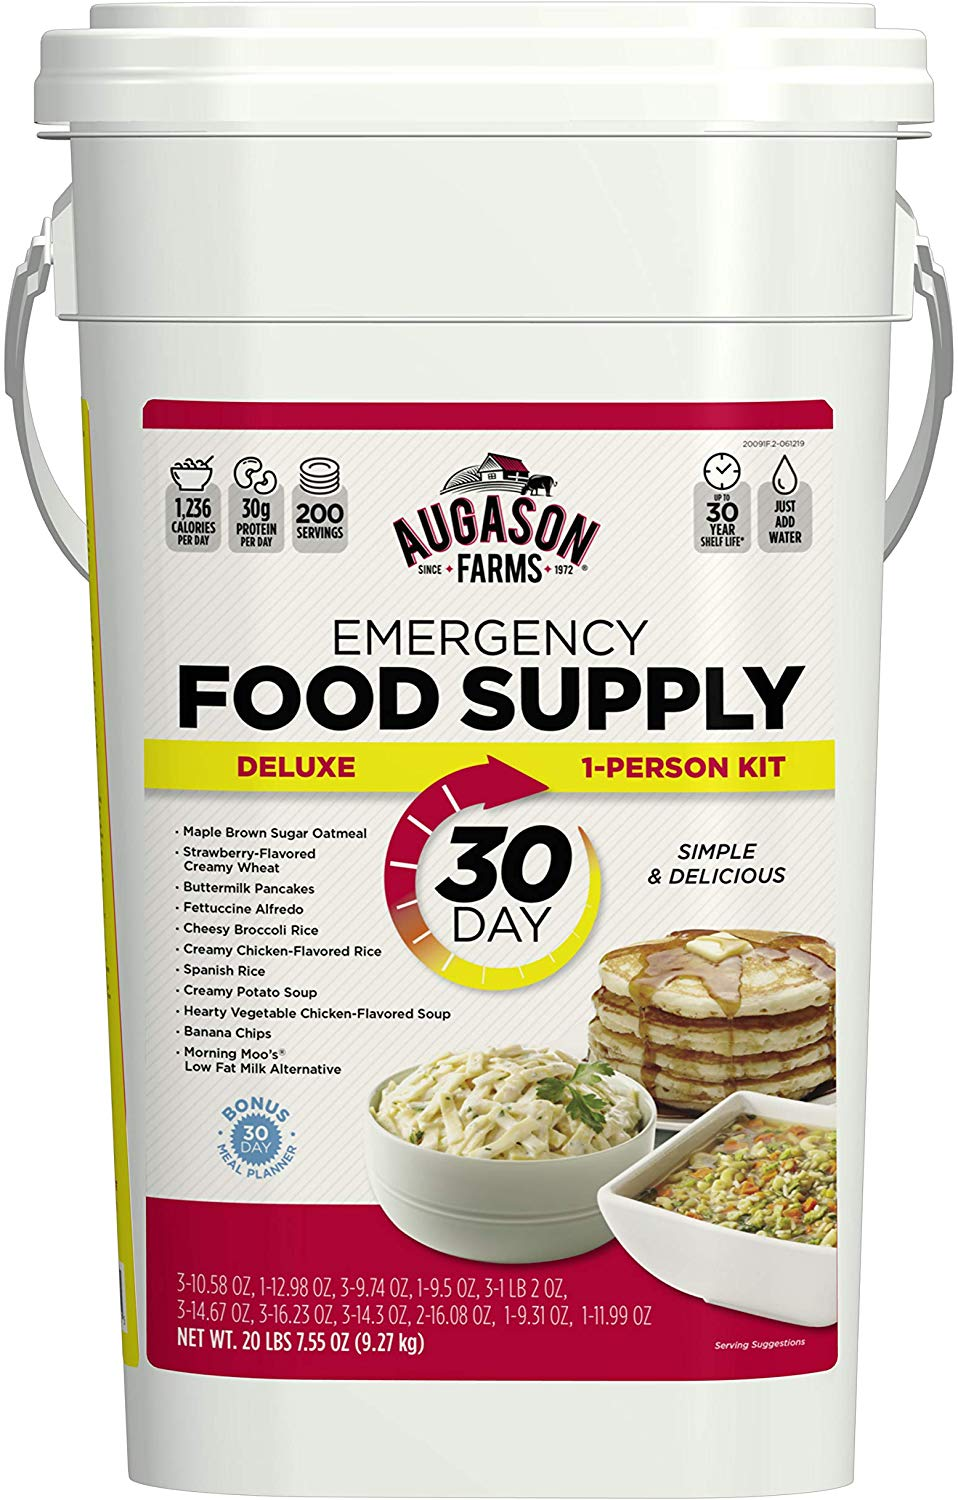 Deluxe Emergency 30-Day Food Supply), Net Weight 20 lbs. 7 oz. by Augason Farms